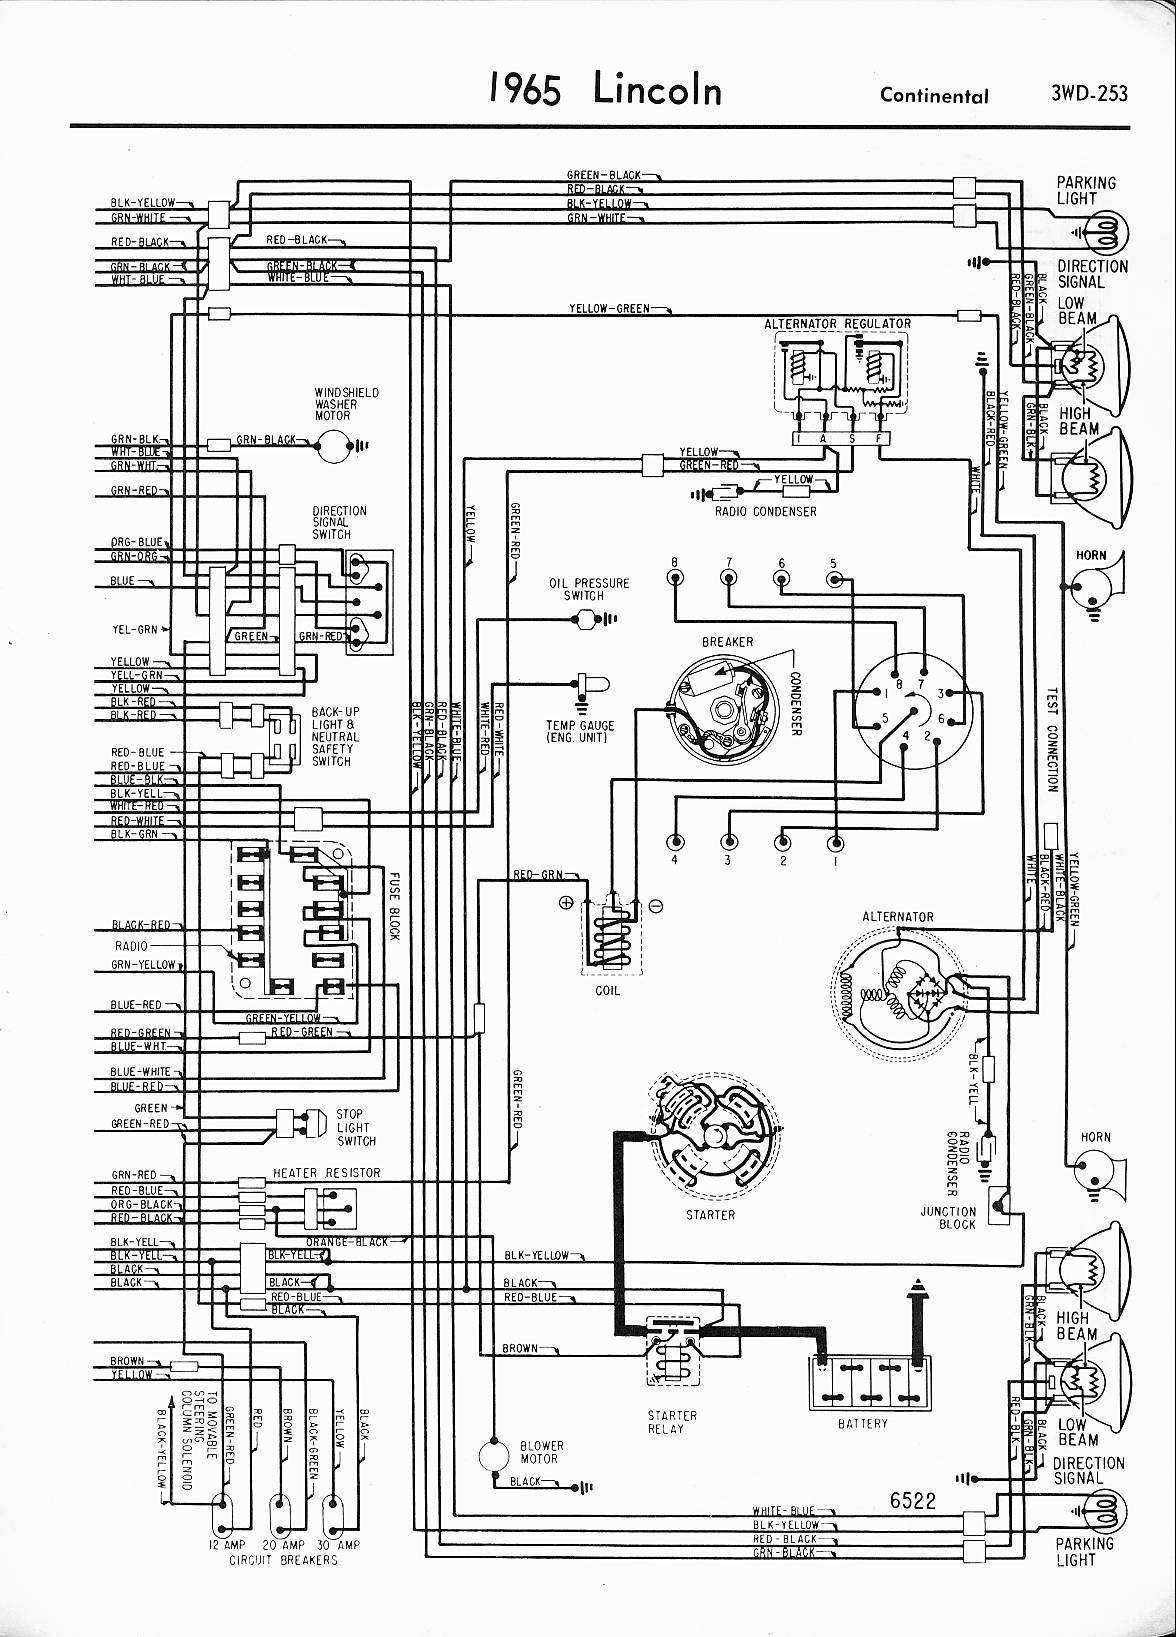 [DIAGRAM] Bentley Continental Fuse Box Diagram FULL